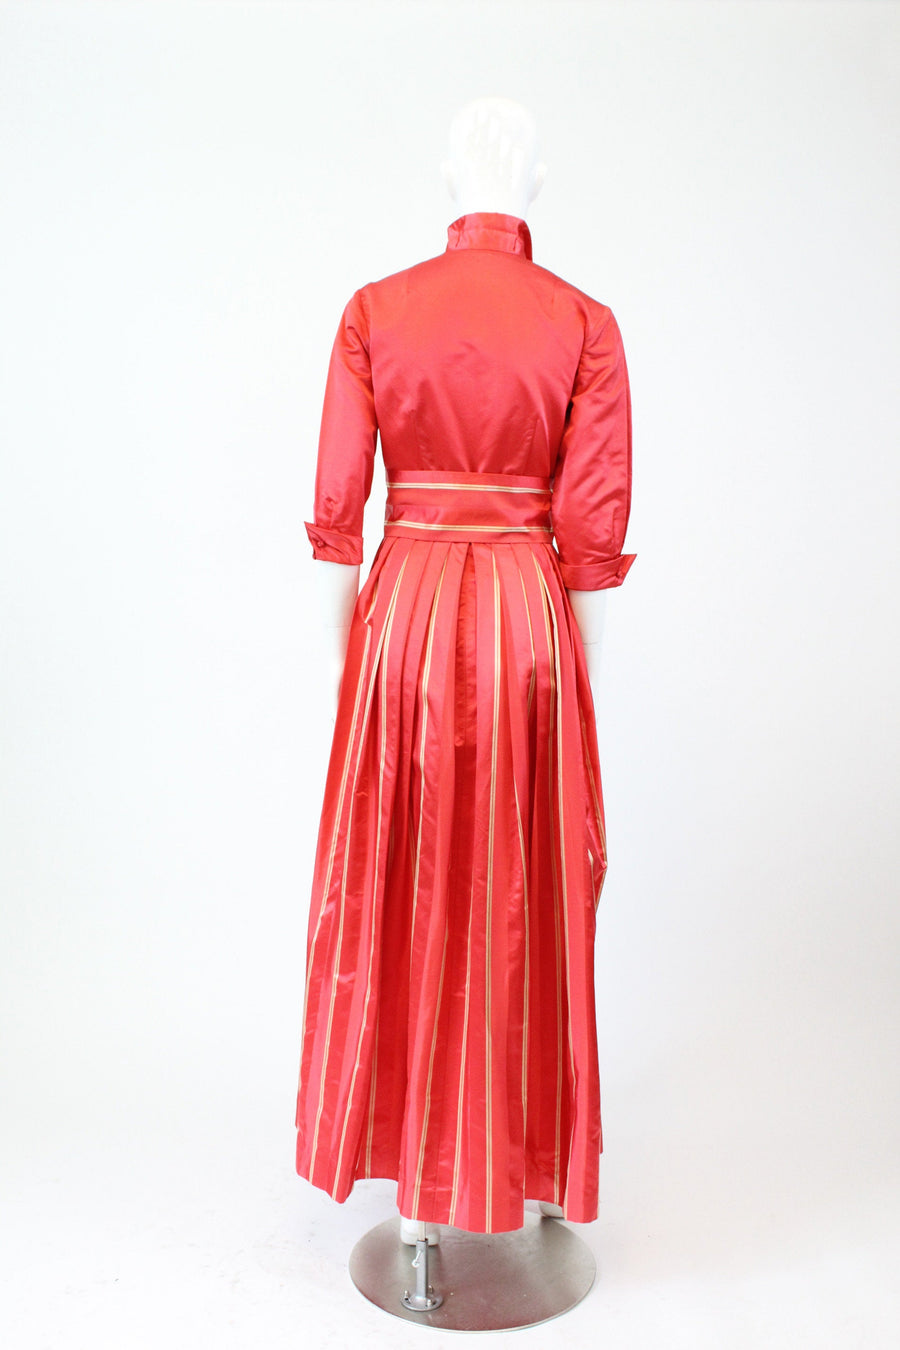 1960s Dynasty silk dressing gown xs | vintage striped belted dress | new in